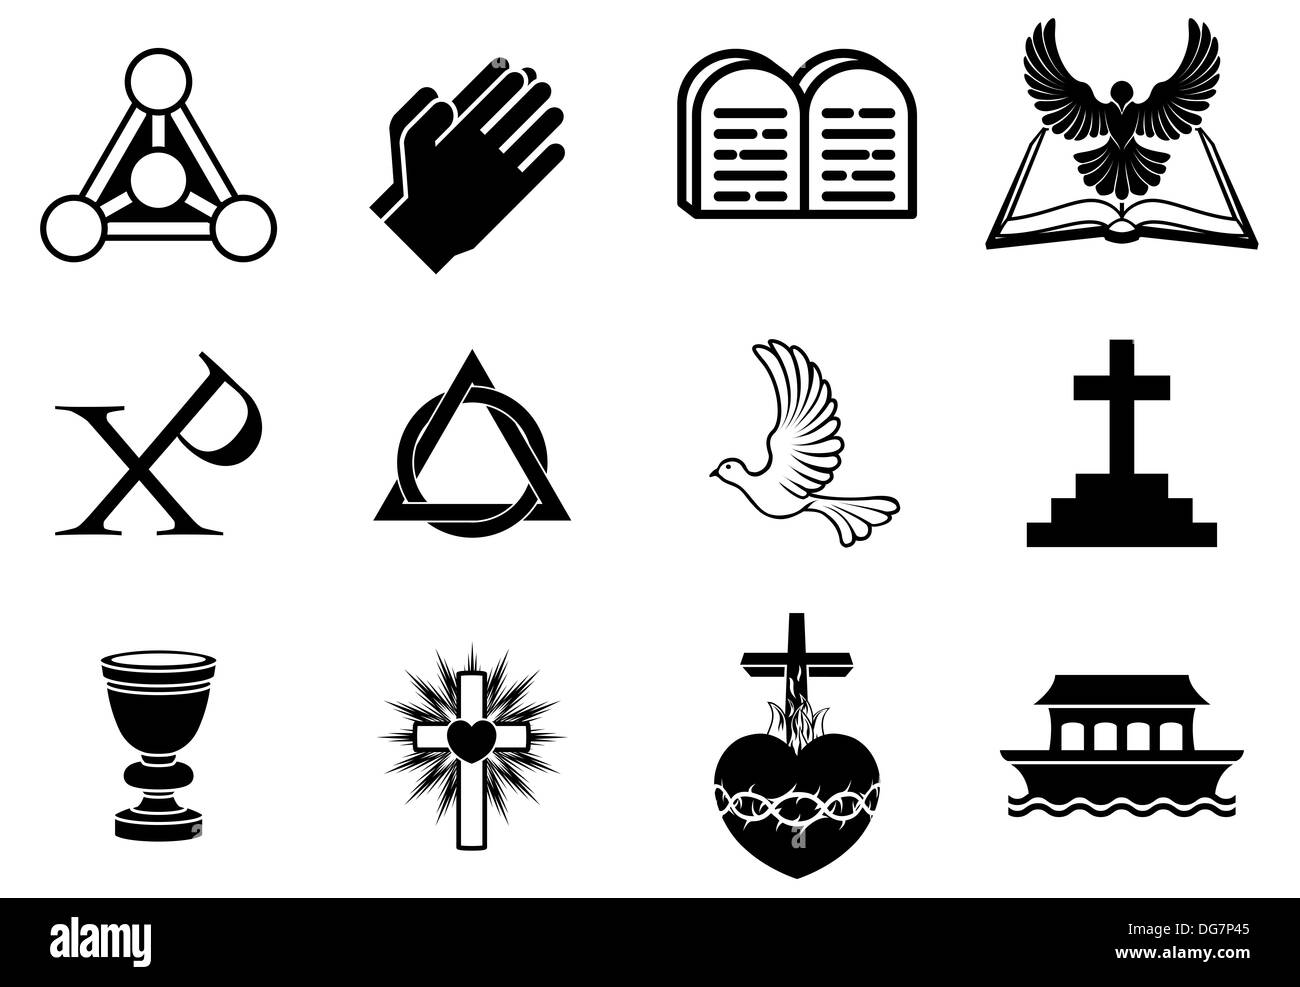 Christianity icons and symbols including dove chi ro praying christianity icons and symbols including dove chi ro praying hands bible trinity christogram cross communion goblet ark buycottarizona Image collections